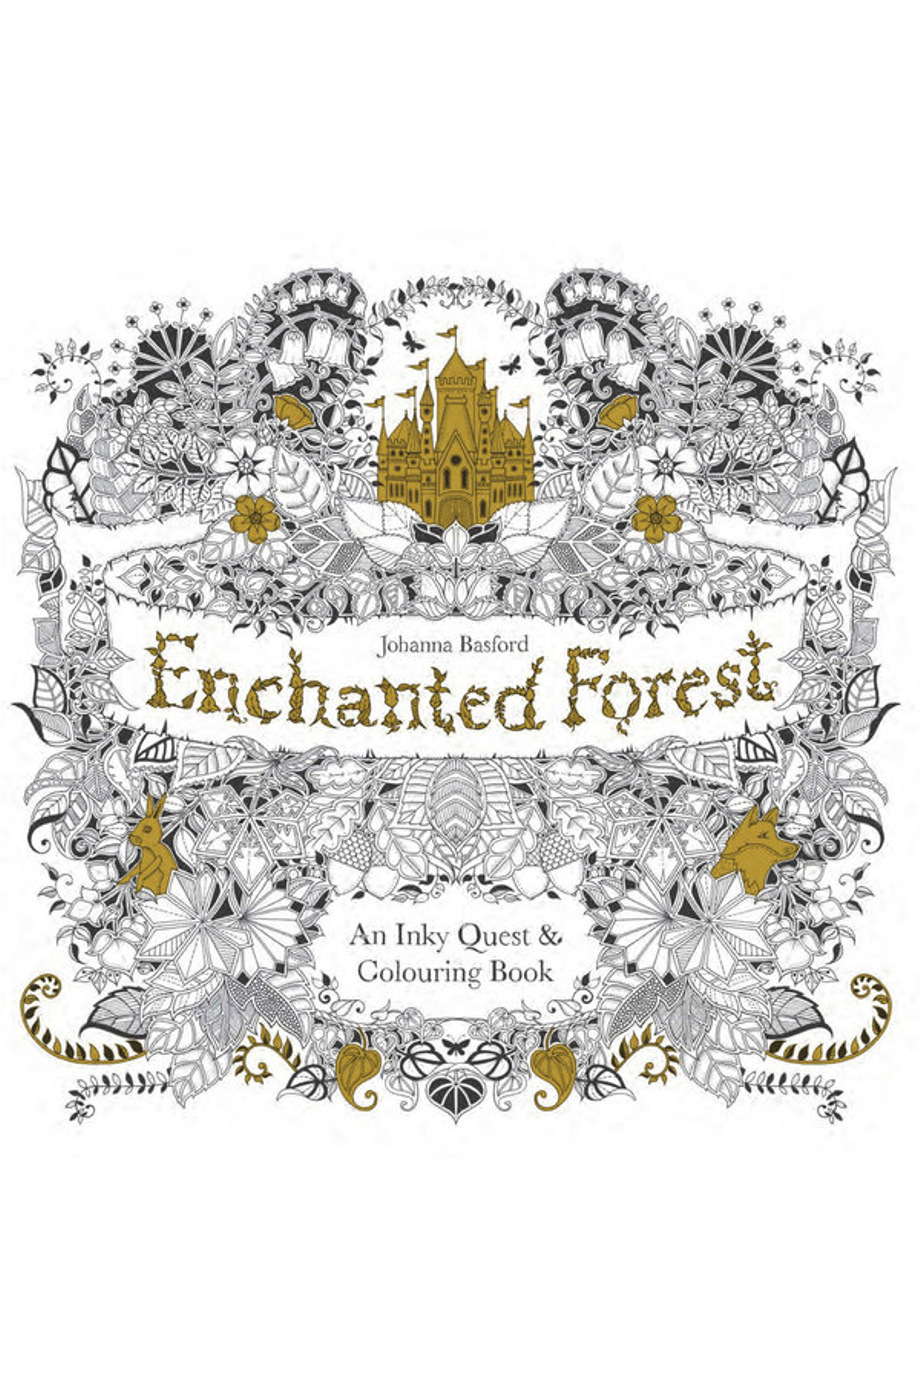 Enchanted Forest An Inky Quest Colouring Book By Johanna